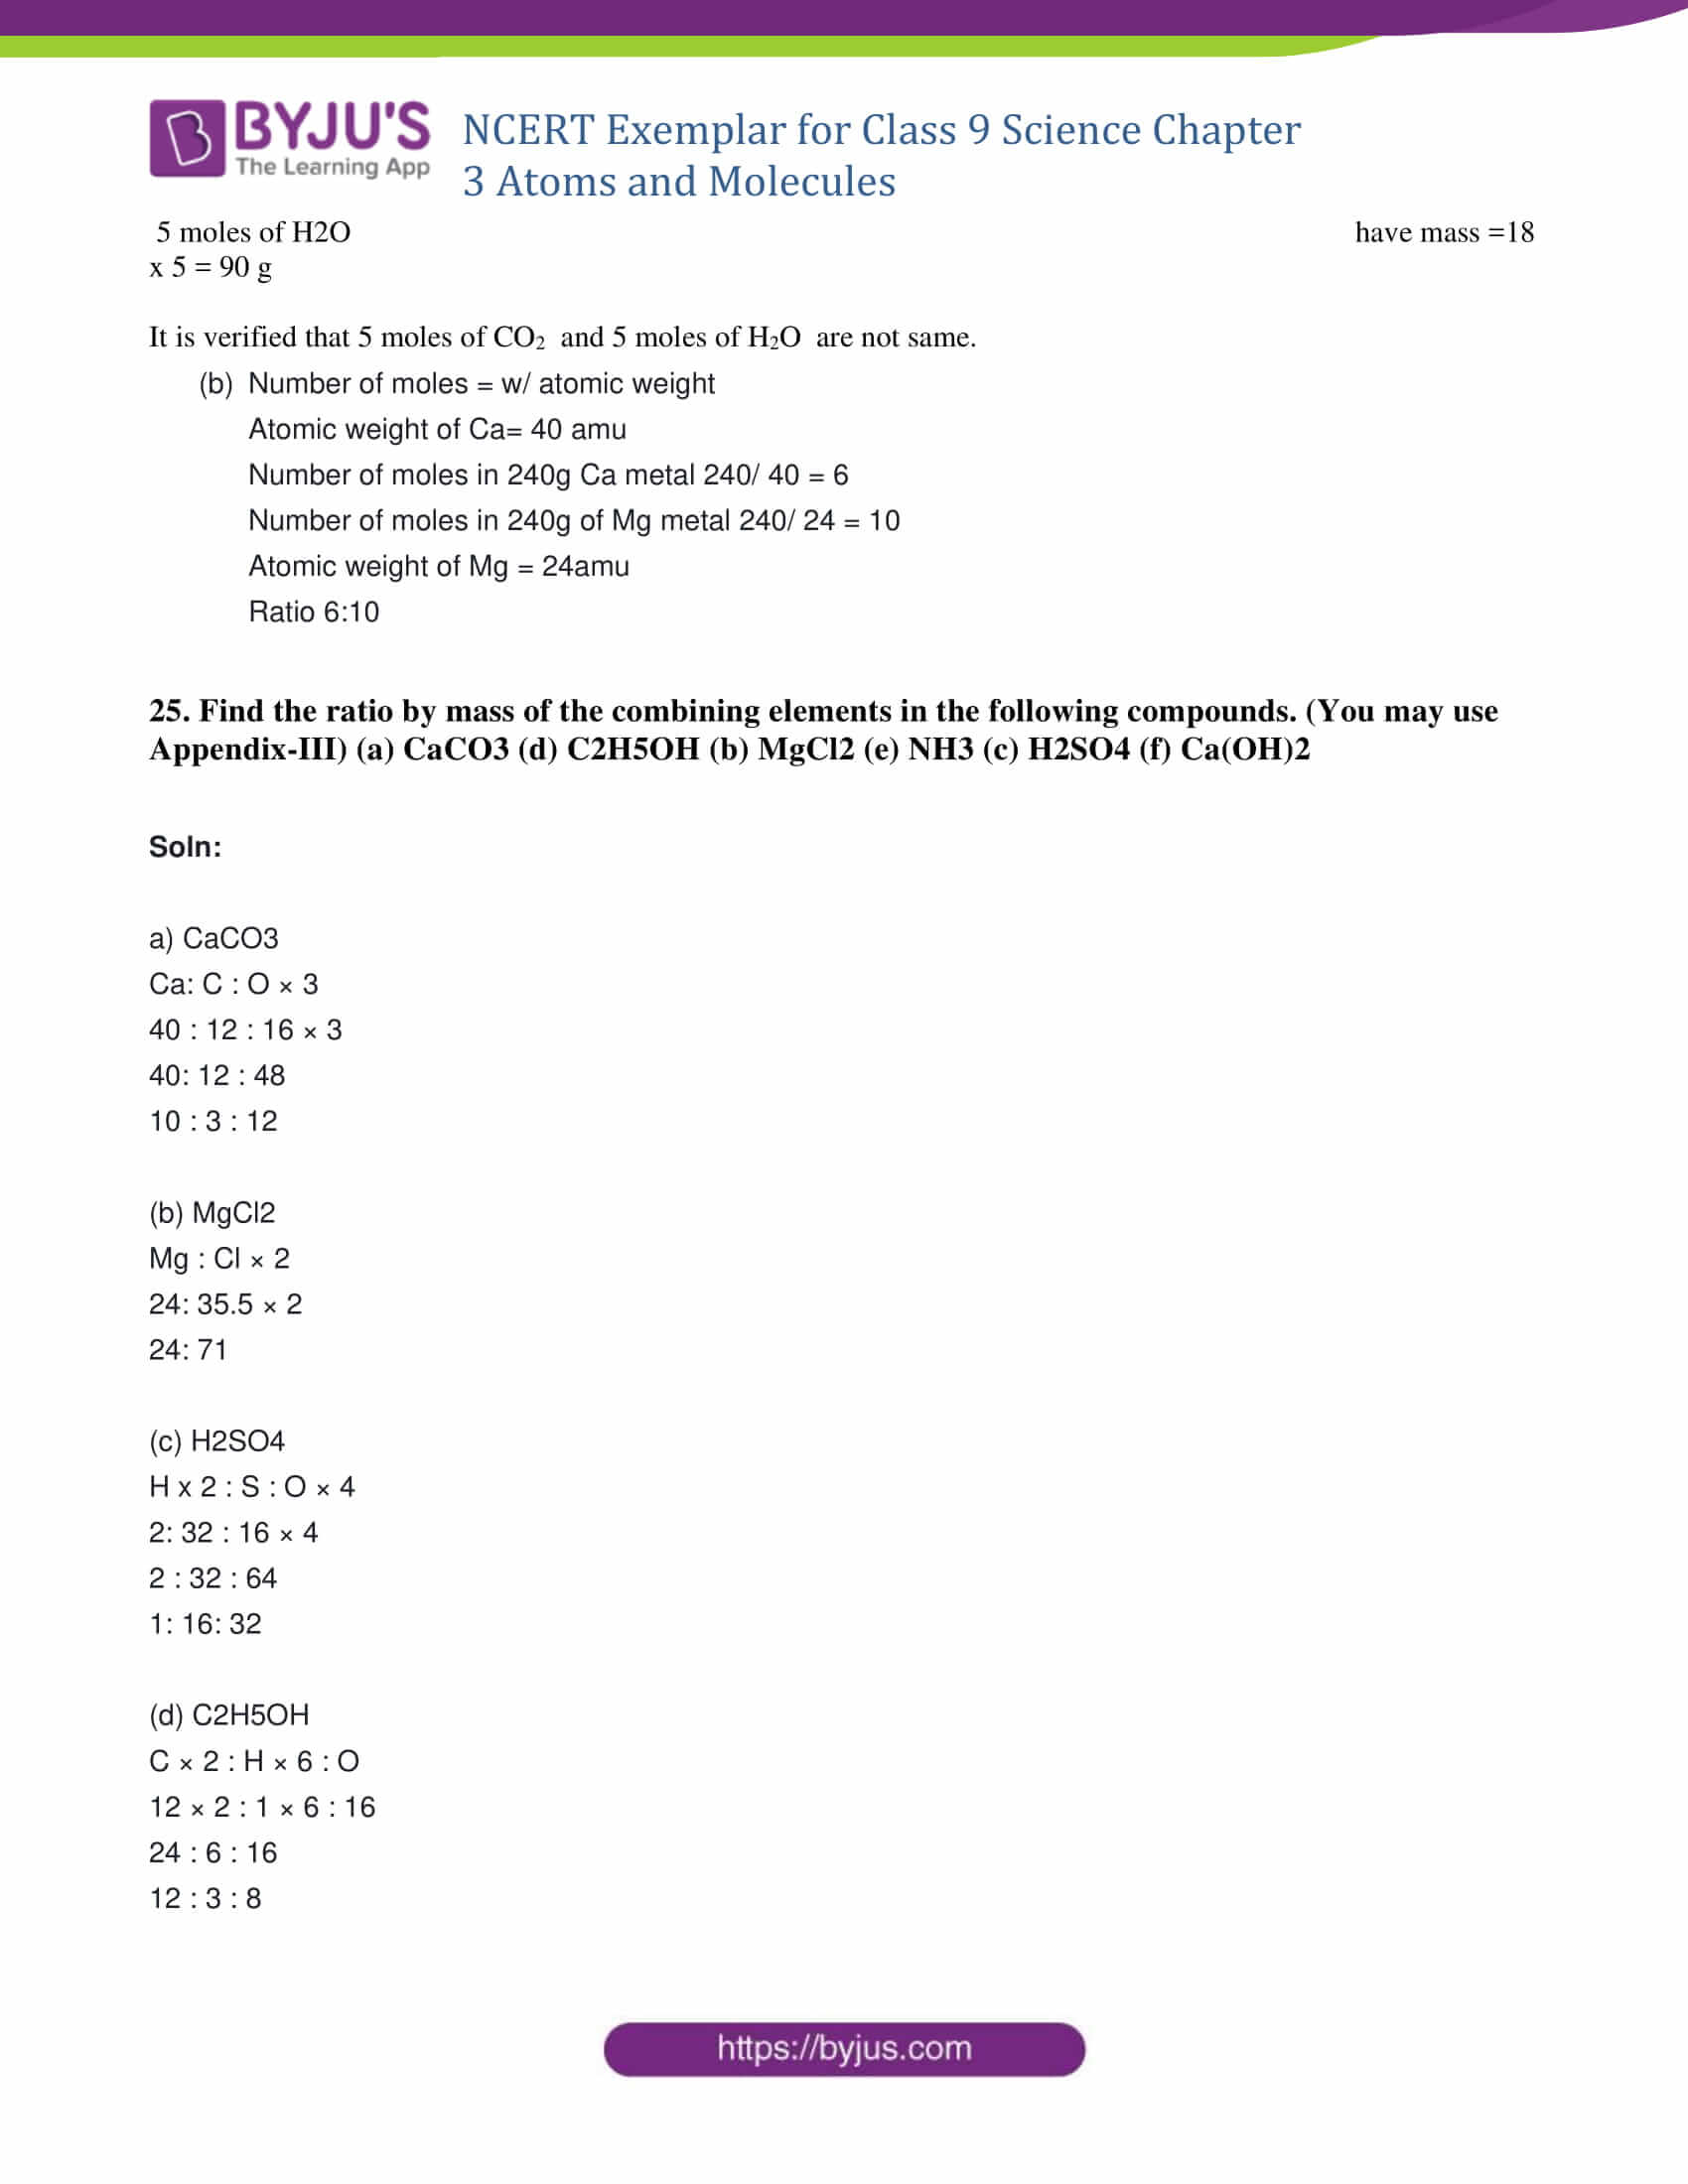 NCERT Exemplar solution class 9 Chapter 3 Part 10